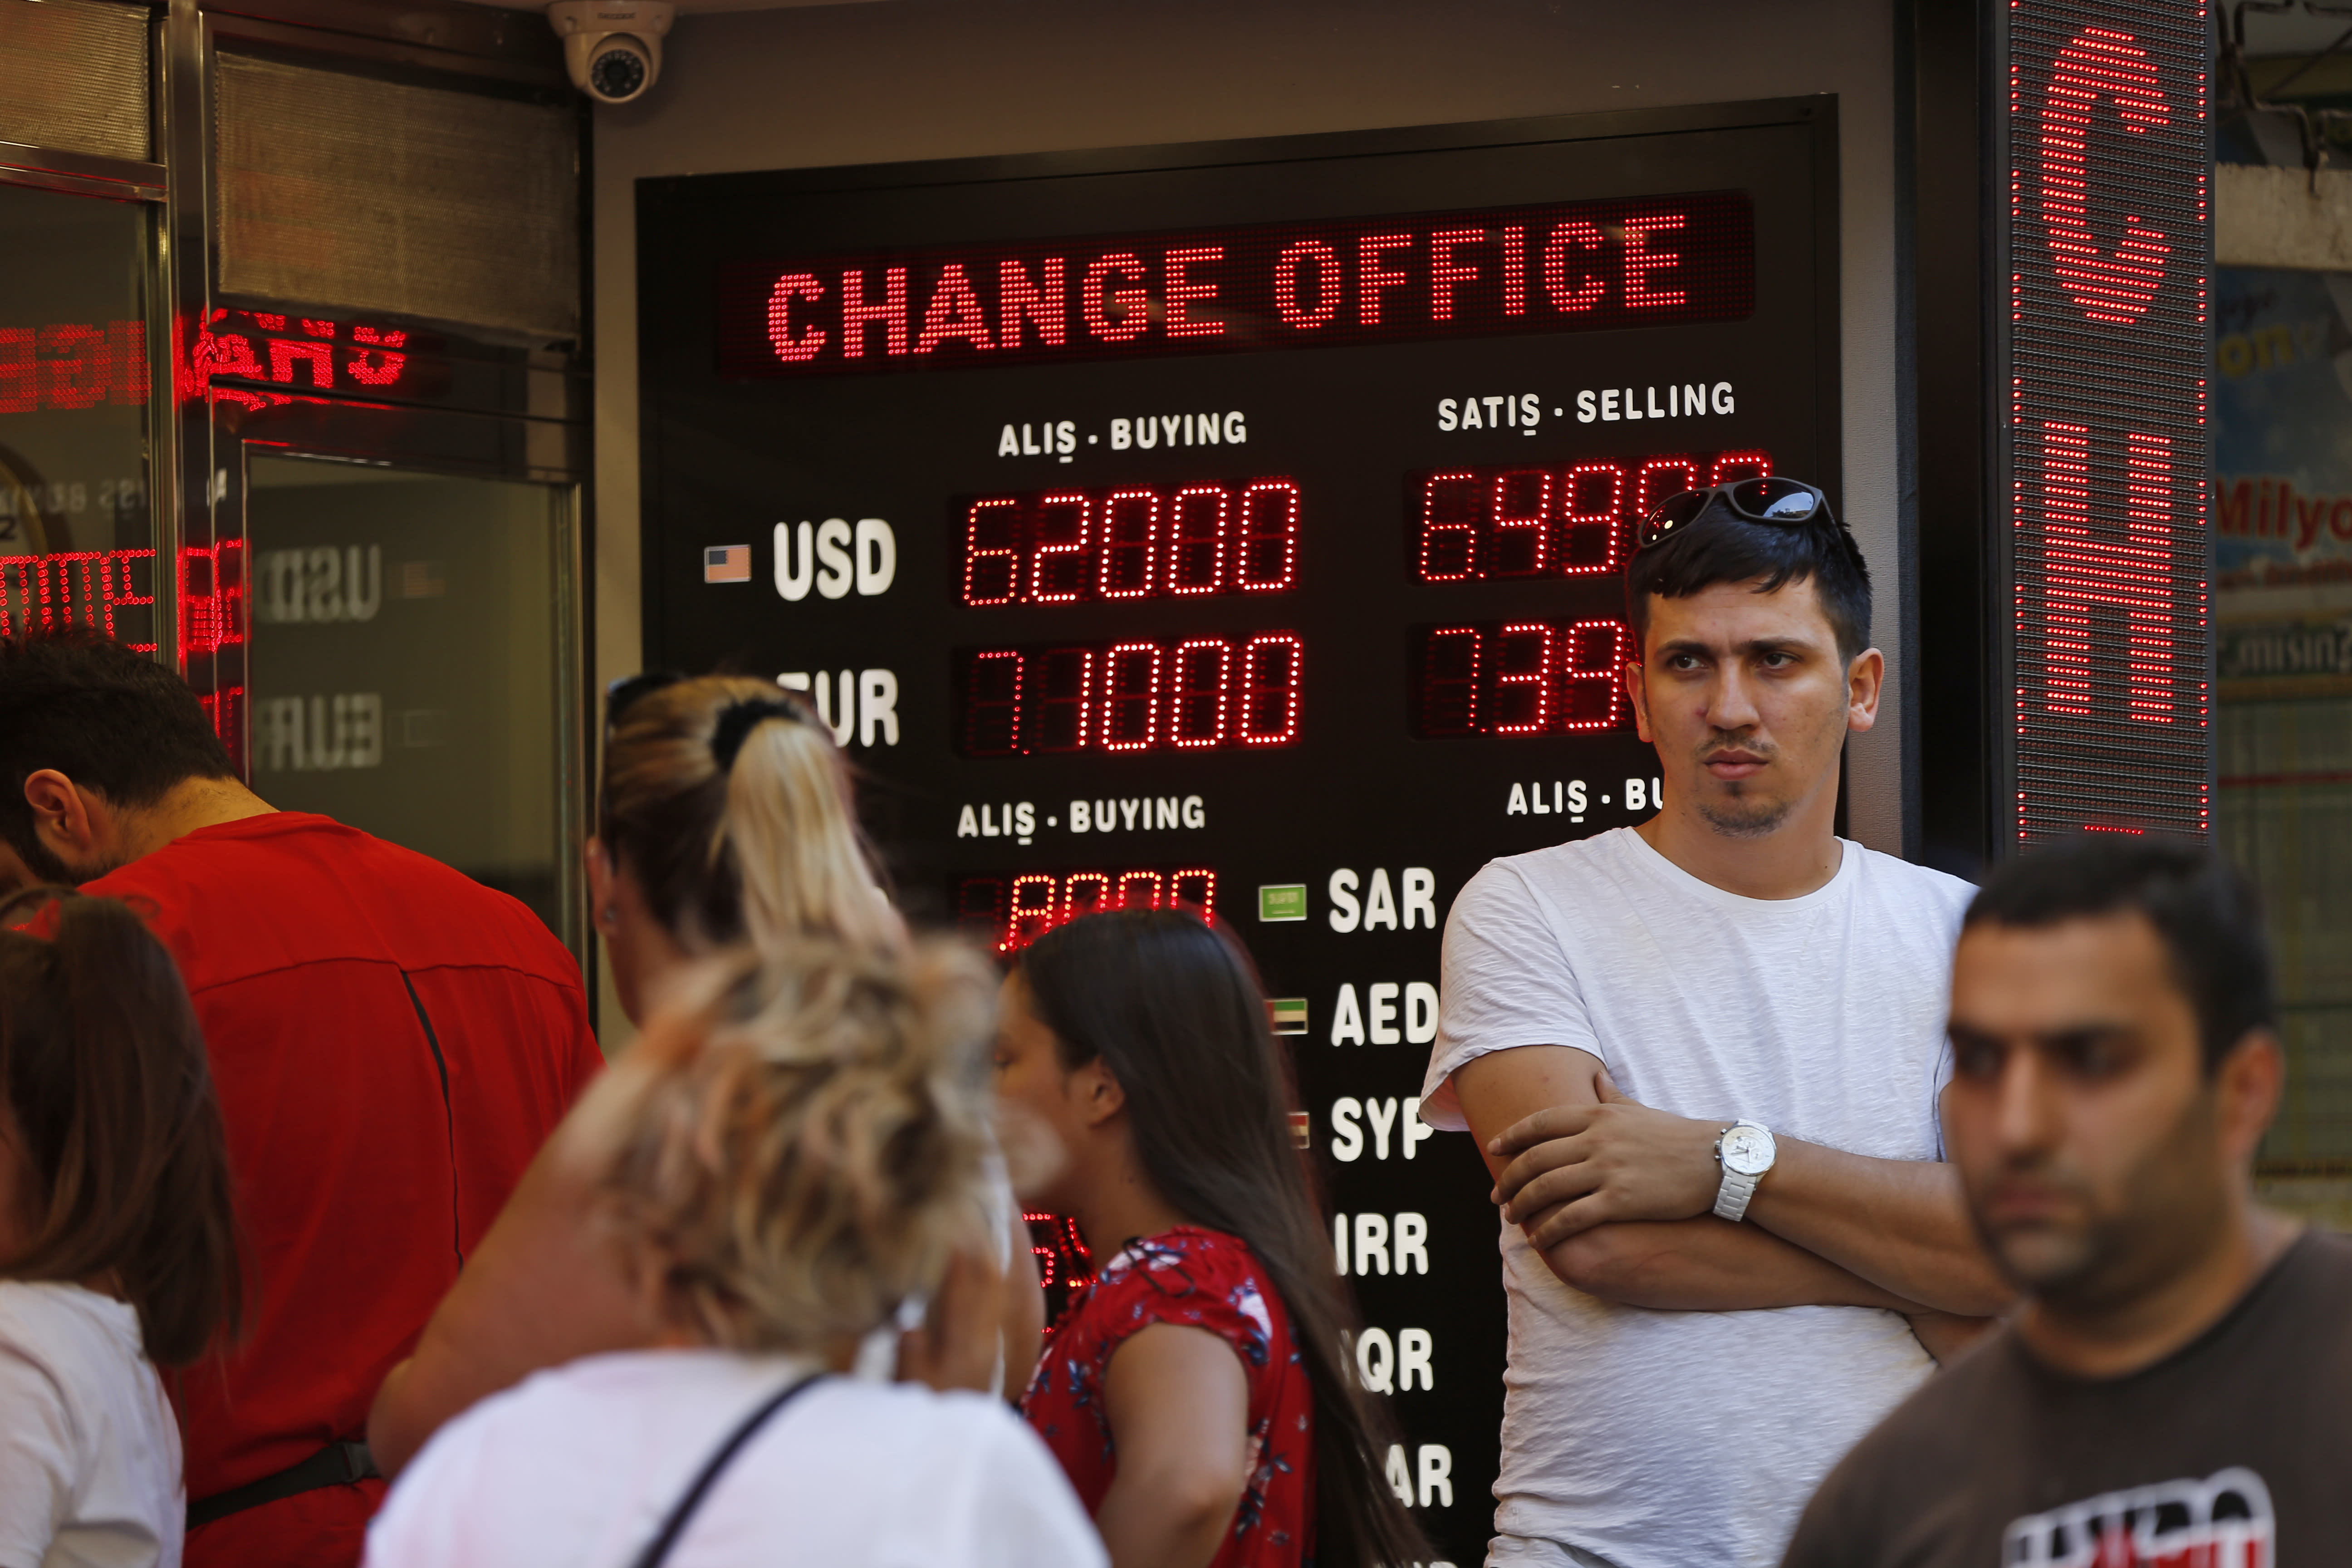 FILE- In this Tuesday, Aug. 14, 2018, file photo people line up at a currency exchange shop in Istanbul. Investors have been pulling out of Turkey's markets, sending its stock market and currency plunging. That's making debt that Turkish companies owe in dollar terms even more expensive to pay back, which only further weakens the country's financial system. (AP Photo/Lefteris Pitarakis, File)